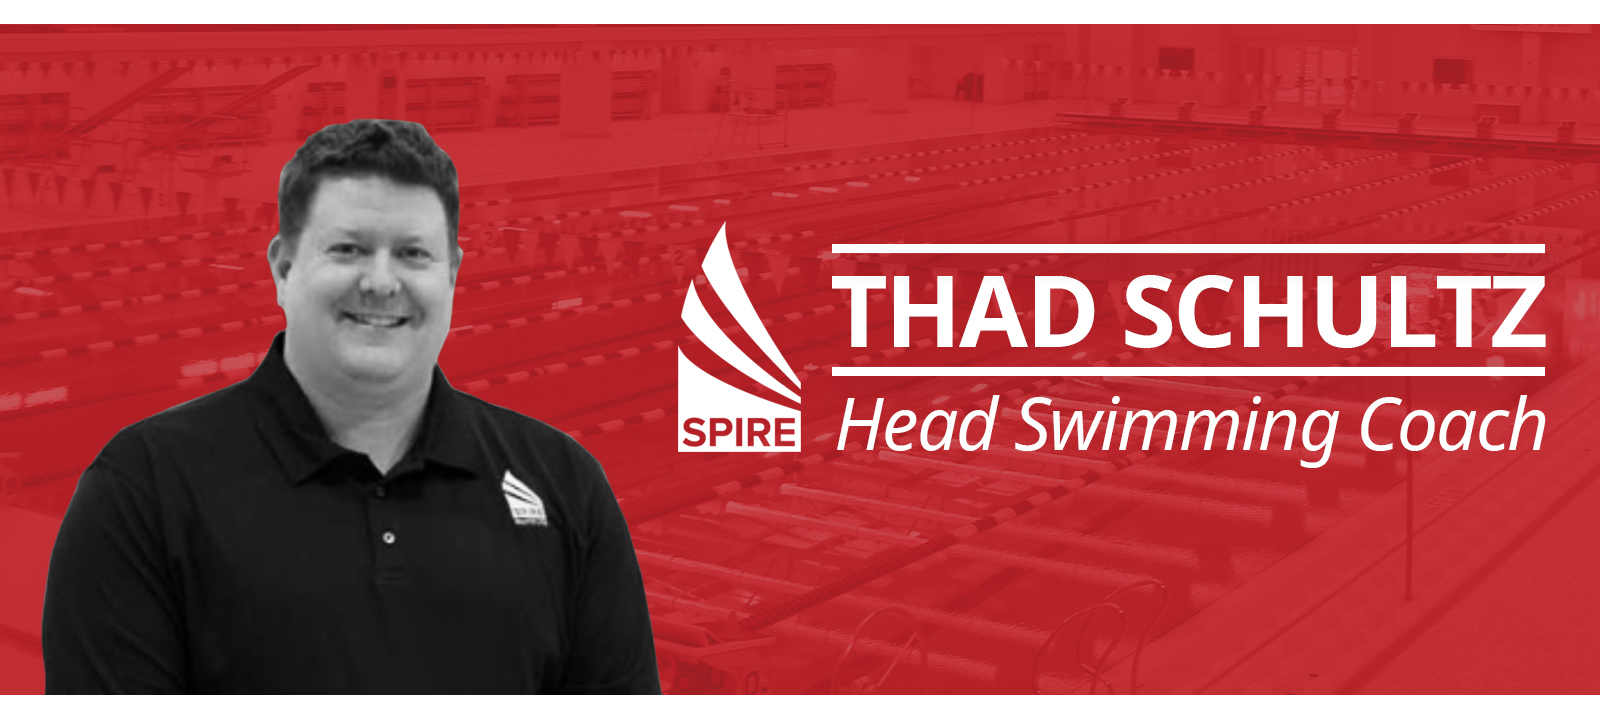 SPIRE IA's Swimming Coach Thad Schultz Develops Better Athletes & Better People